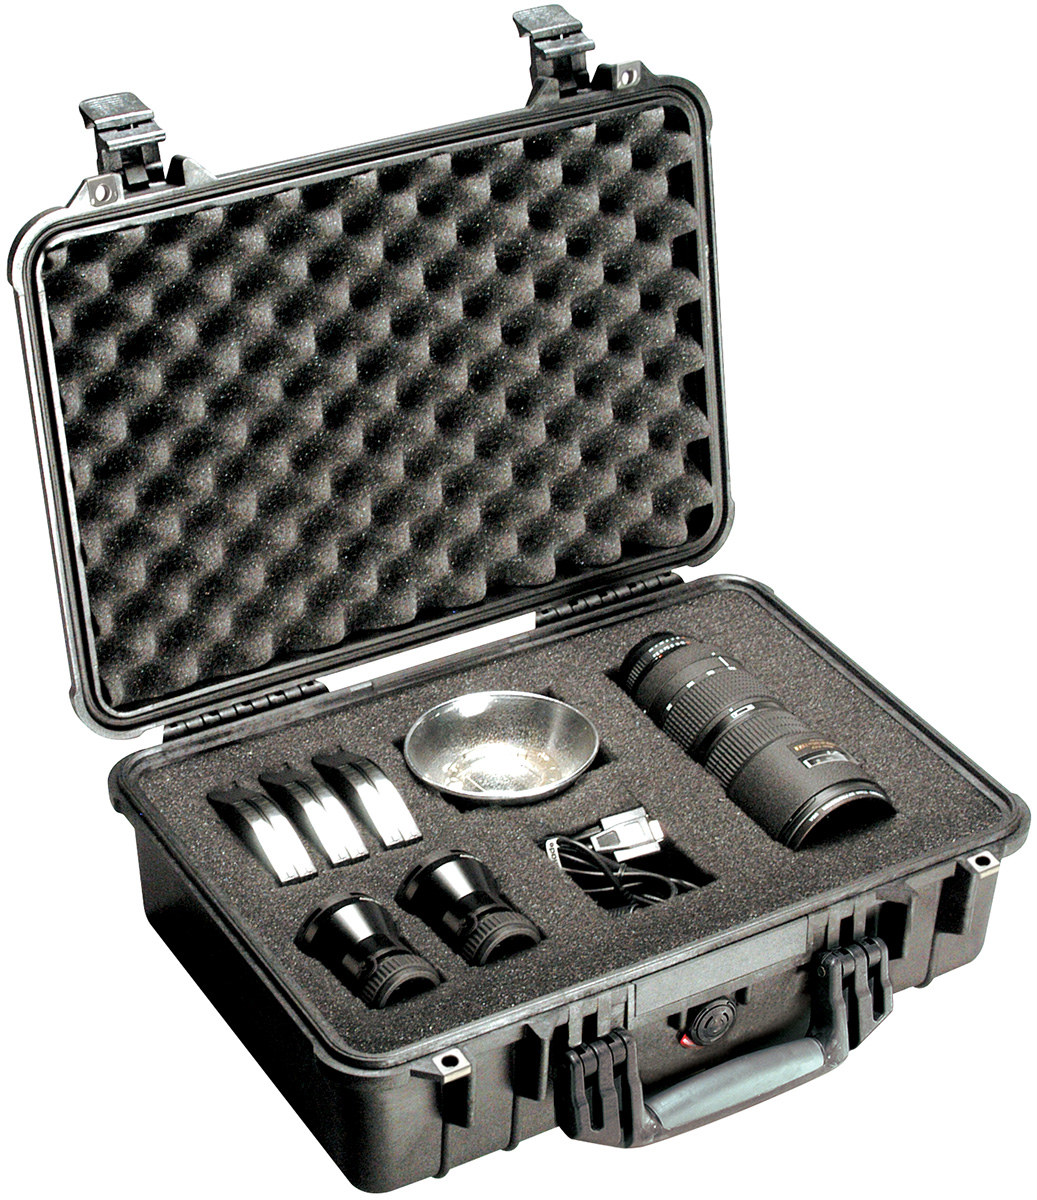 Pelican 1500 Case open